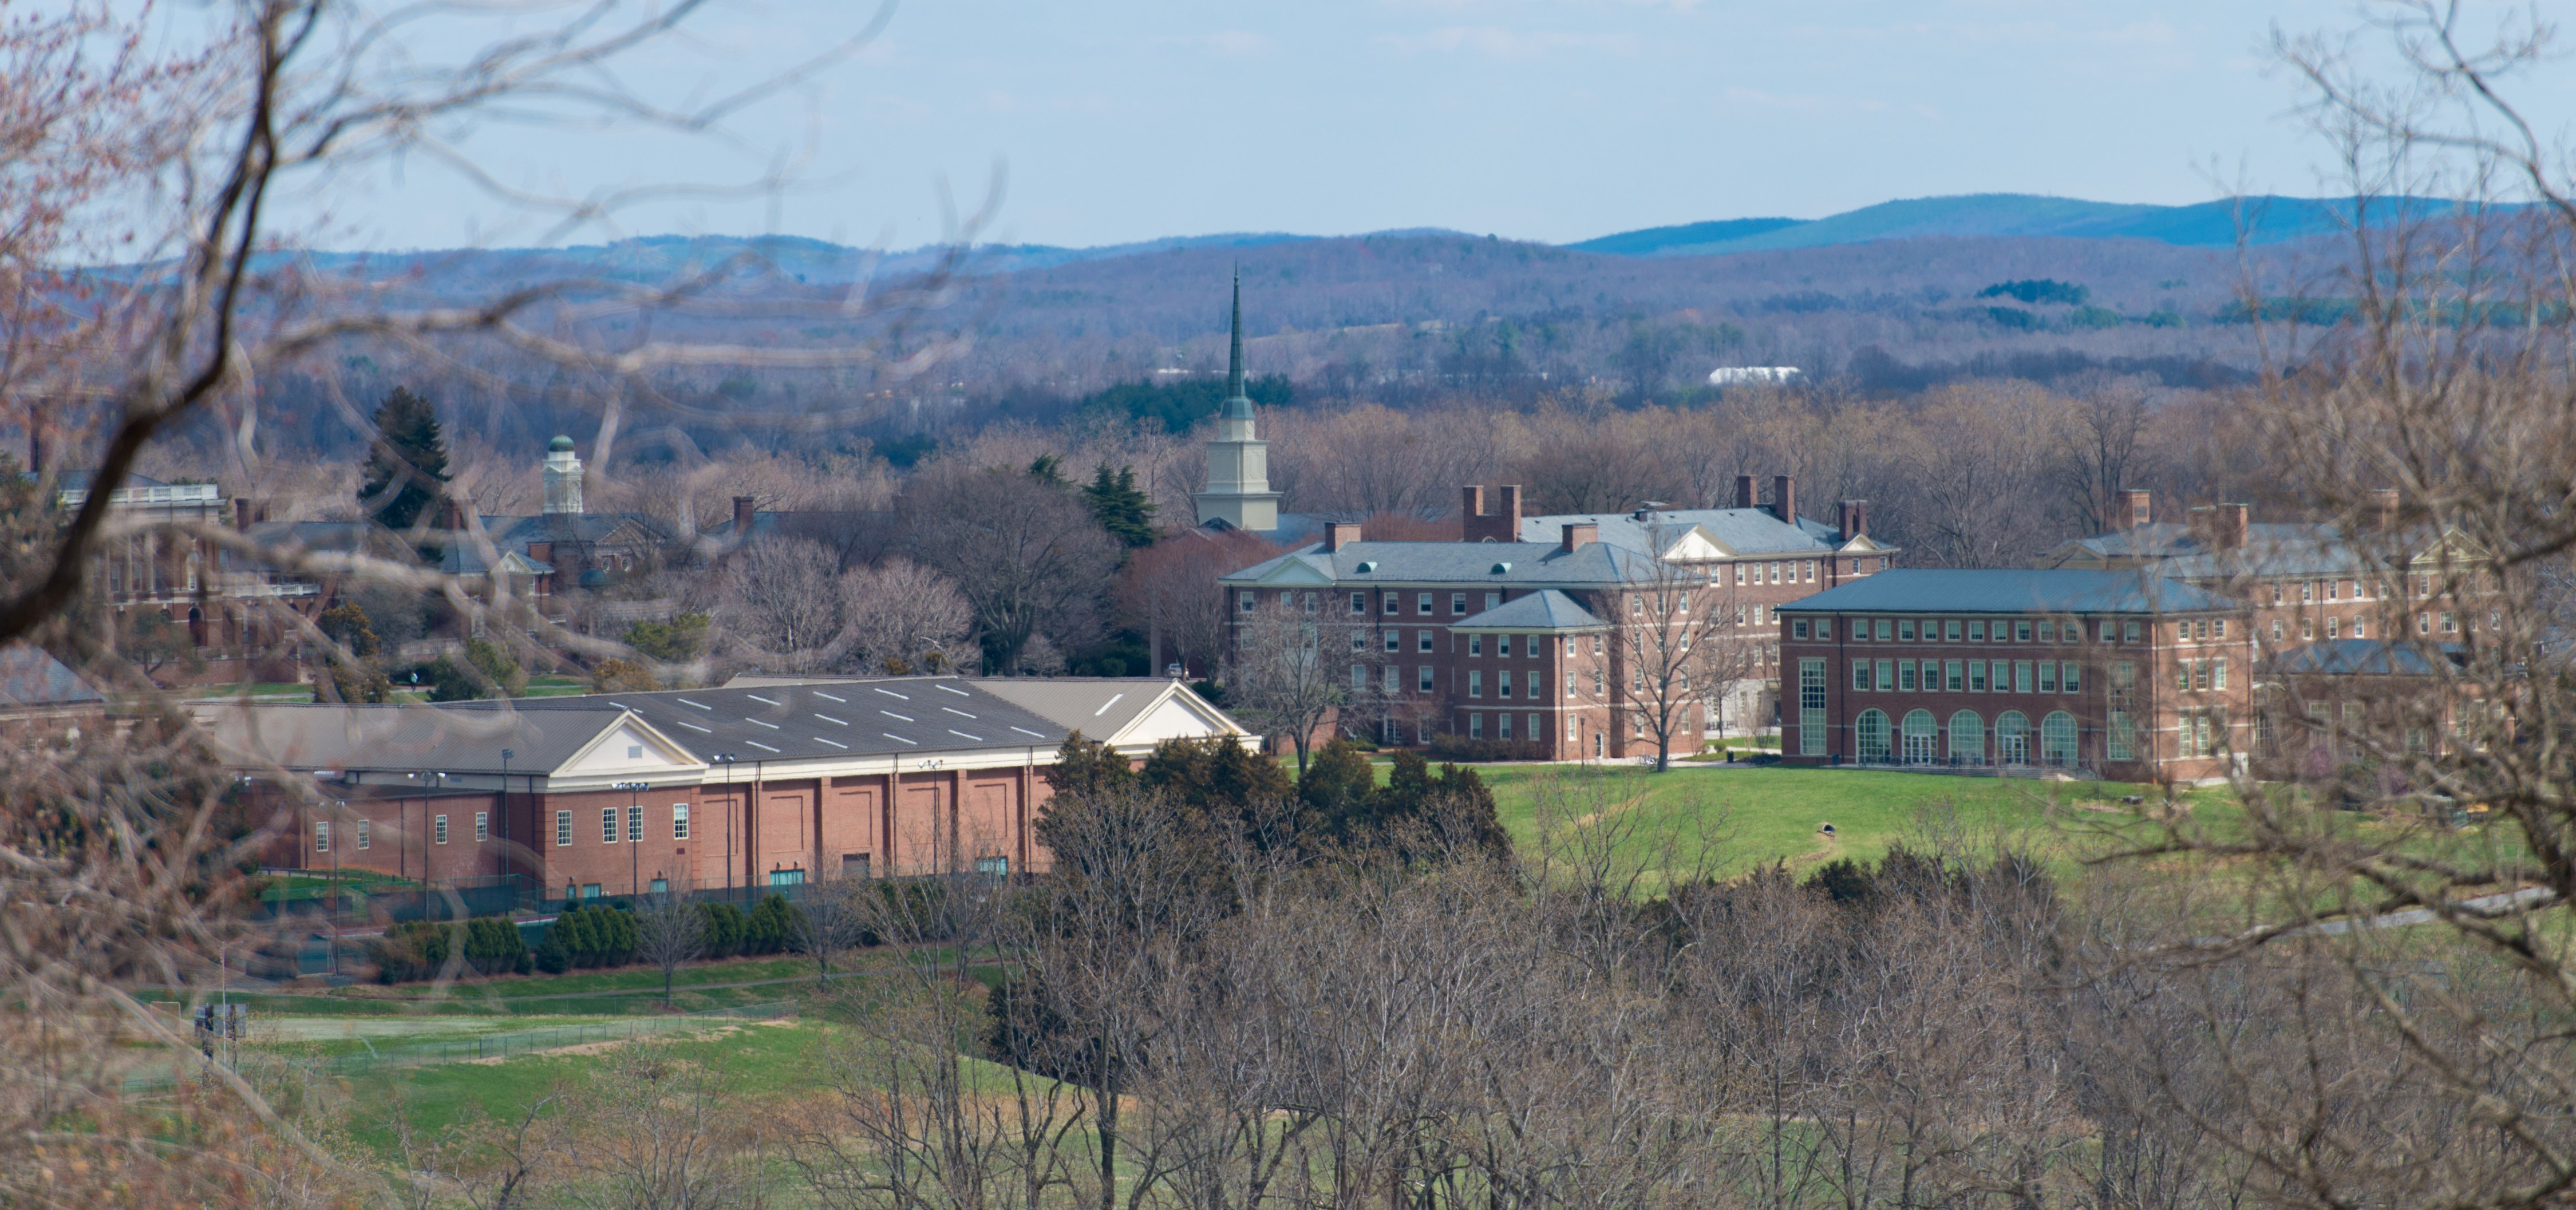 Monument Hill's view of the Sweet Briar campus where 21 of the 30 buildings are designated as the Sweet Briar College Historic District on the National Register of Historic Places. (Photo by Margret Wood '13)